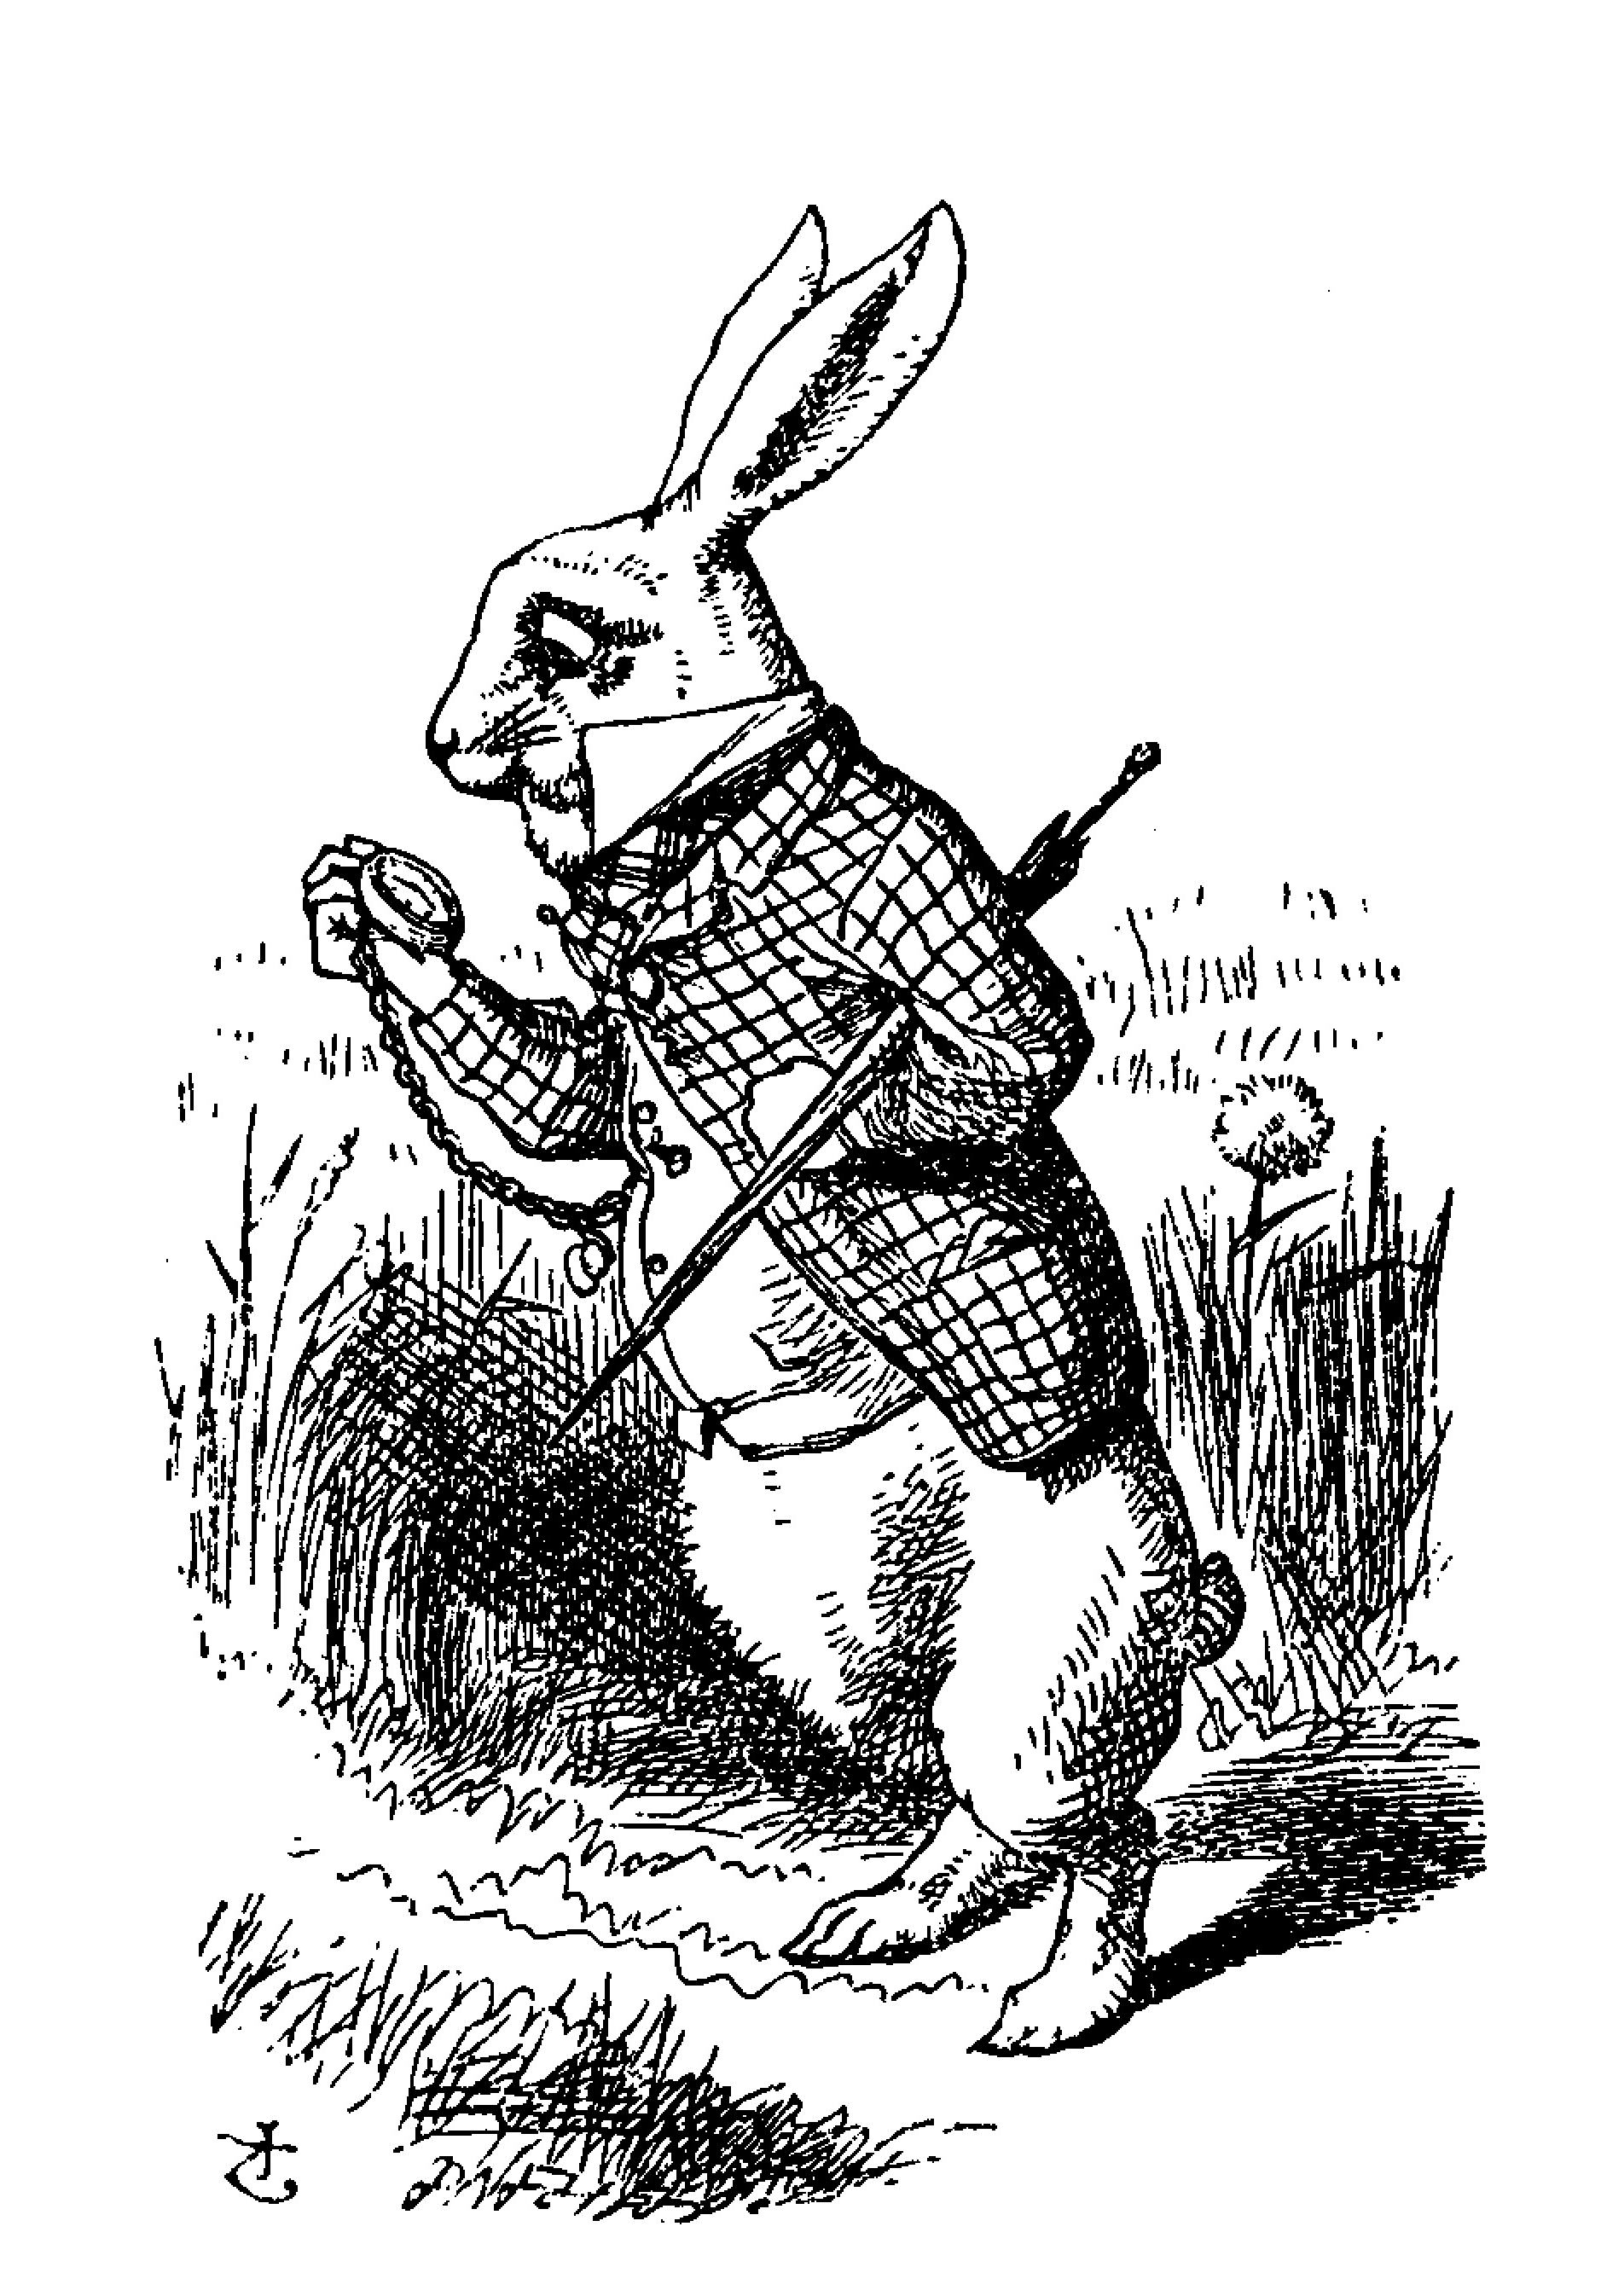 Illustration by John Tenniel. A rabbit stands on two legs, wearing a waistcoat with an umbrella underneath his arm. The rabbit is checking his pocked watch with his other arm.